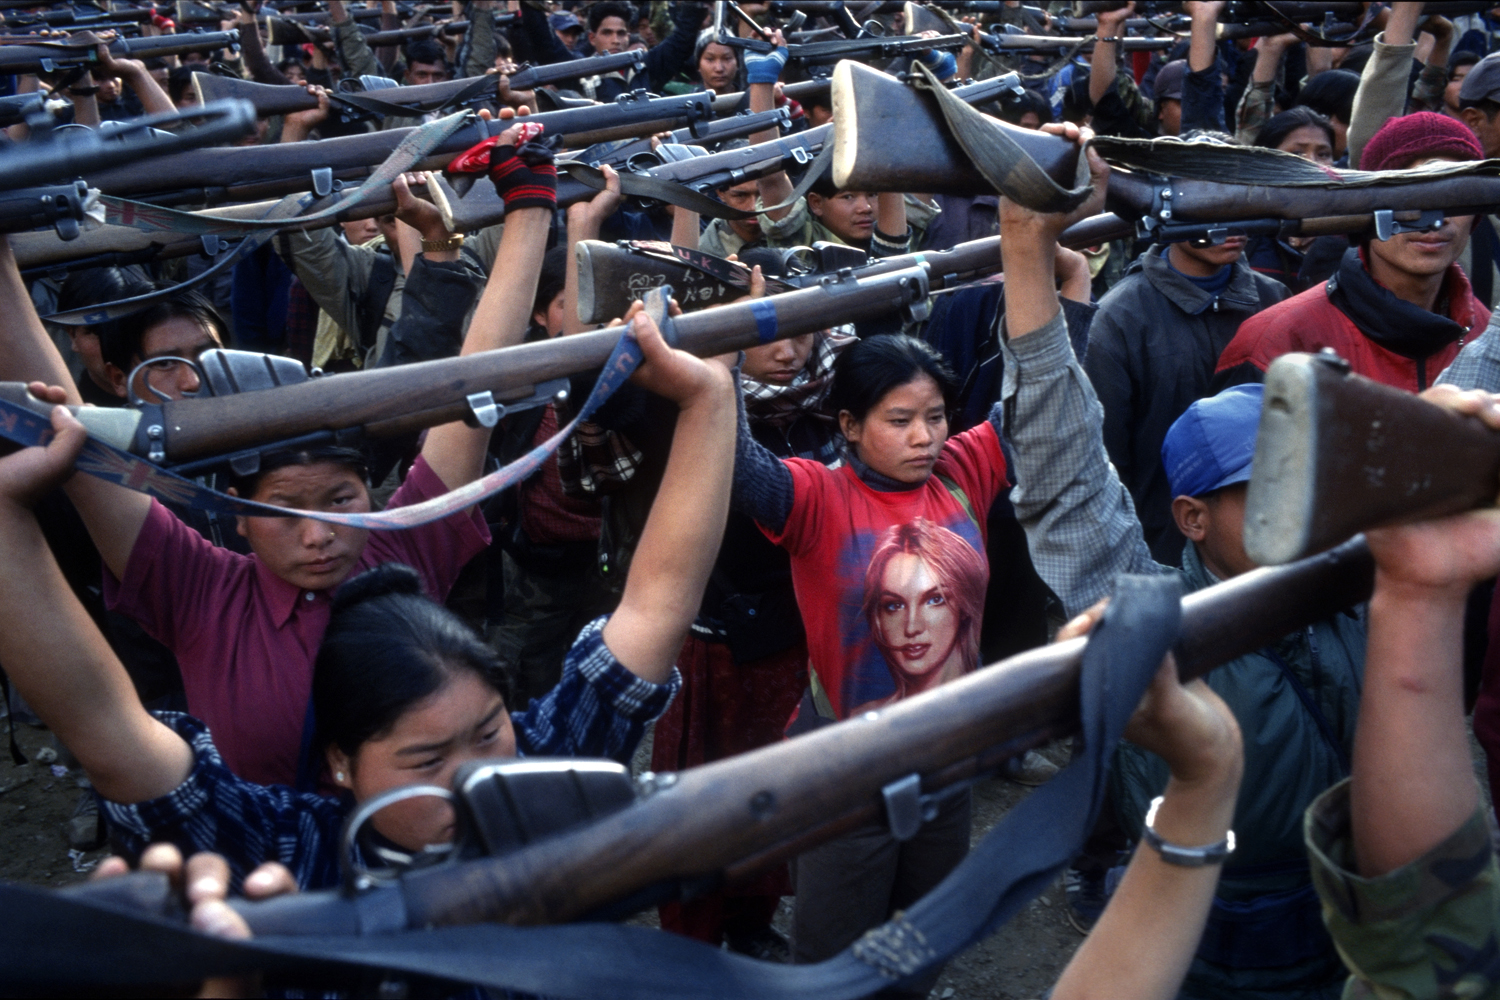 A Maoist rebel soldier wearing a Britney Spears t-shirt stands among a batallion of other soldiers of the People's Liberation Army, First Brigade, Mid Division during a drill in a schoolyard in the village of Gairigaon, Nepal on Wednesday, Feb. 16, 2005.